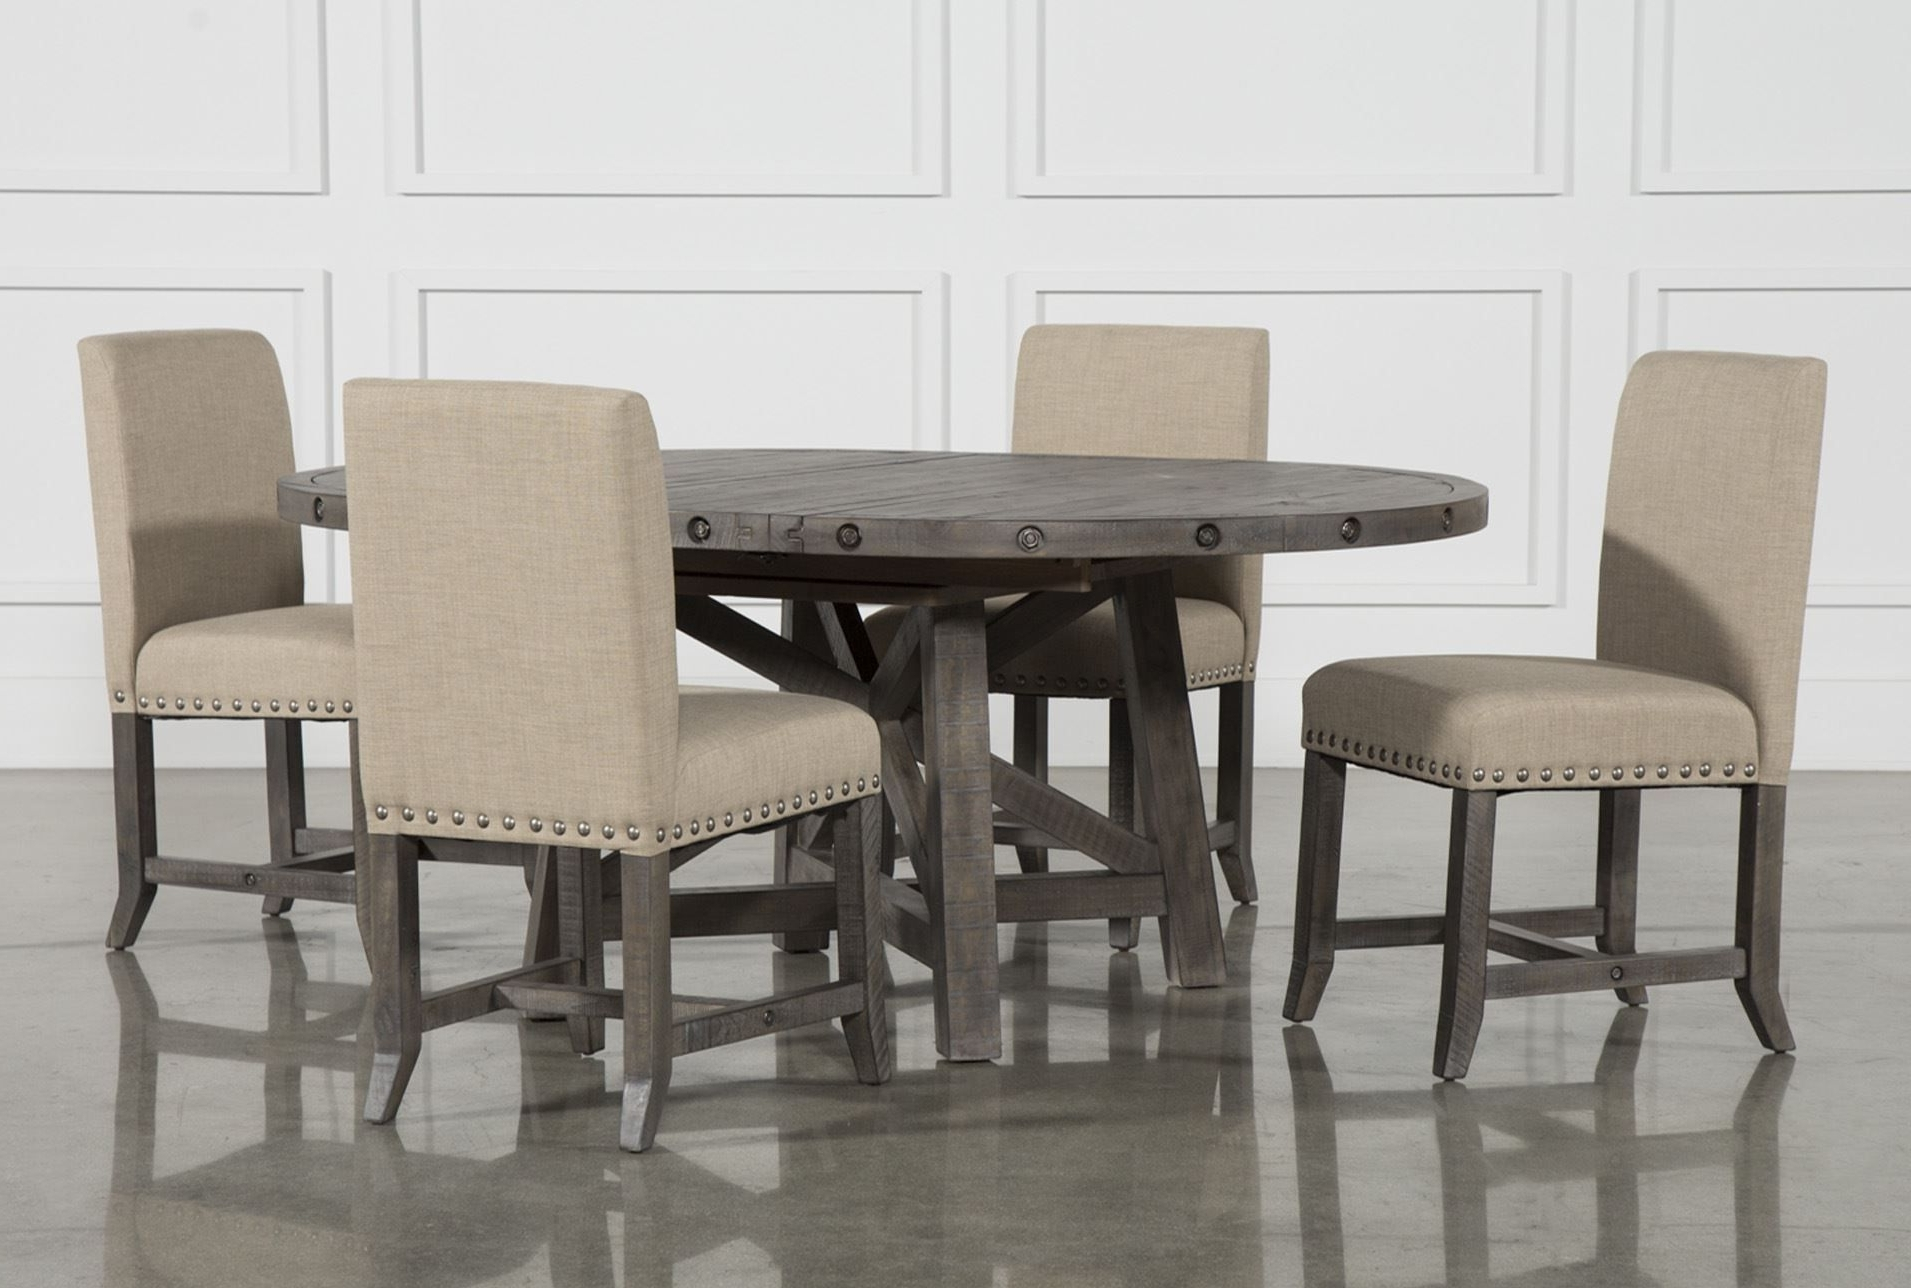 Caden 5 Piece Round Dining Sets With Upholstered Side Chairs Throughout Most Up To Date Jaxon Grey 5 Piece Round Extension Dining Set W/upholstered Chairs (View 2 of 25)